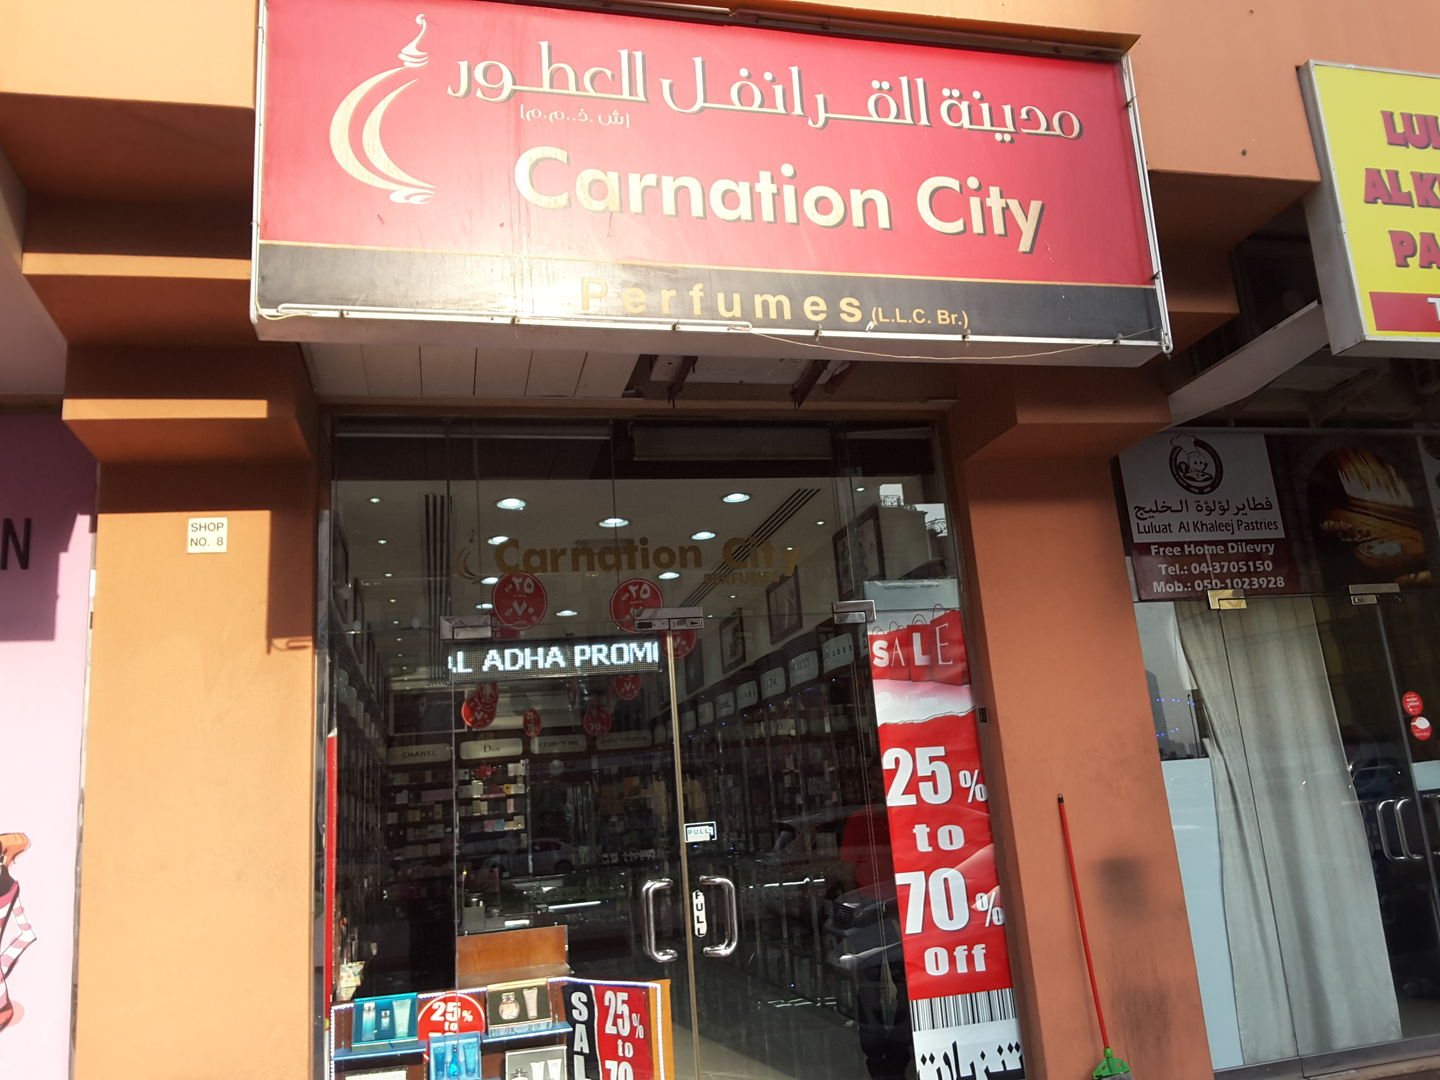 HiDubai-business-carnation-city-perfumes-shopping-beauty-cosmetics-stores-oud-metha-dubai-2